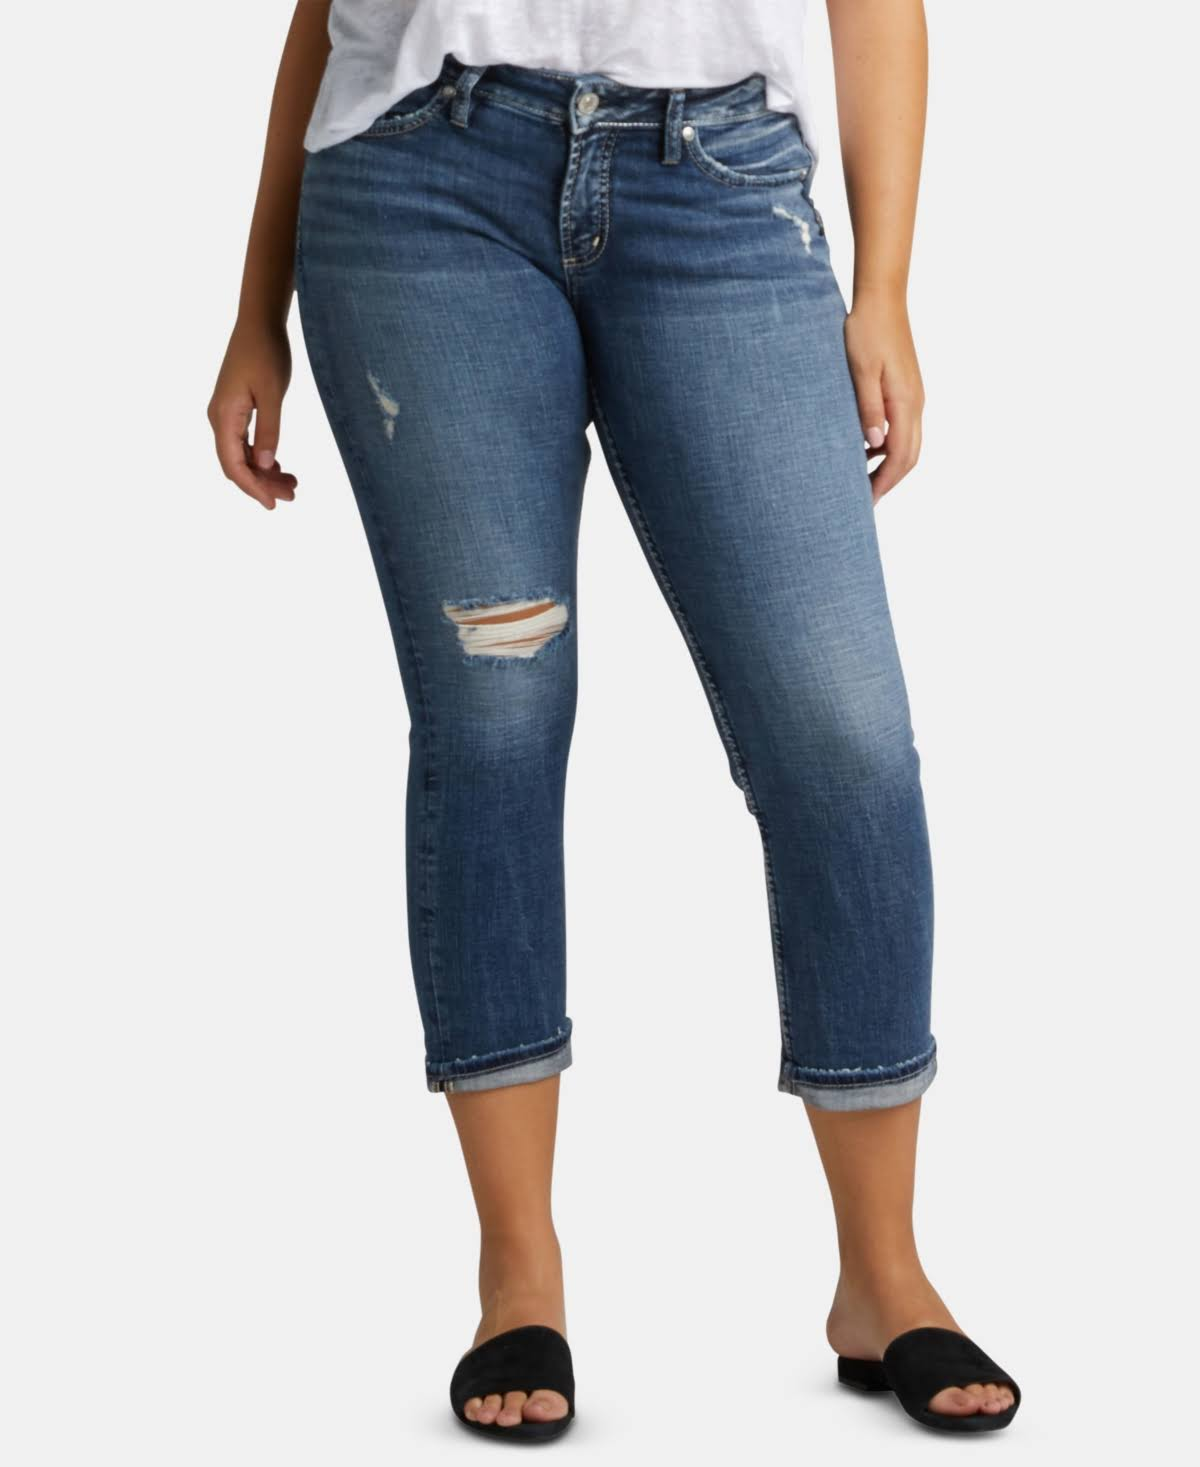 Silver Jeans Co. Elyse Destructed Capri Jeans - Indigo 30